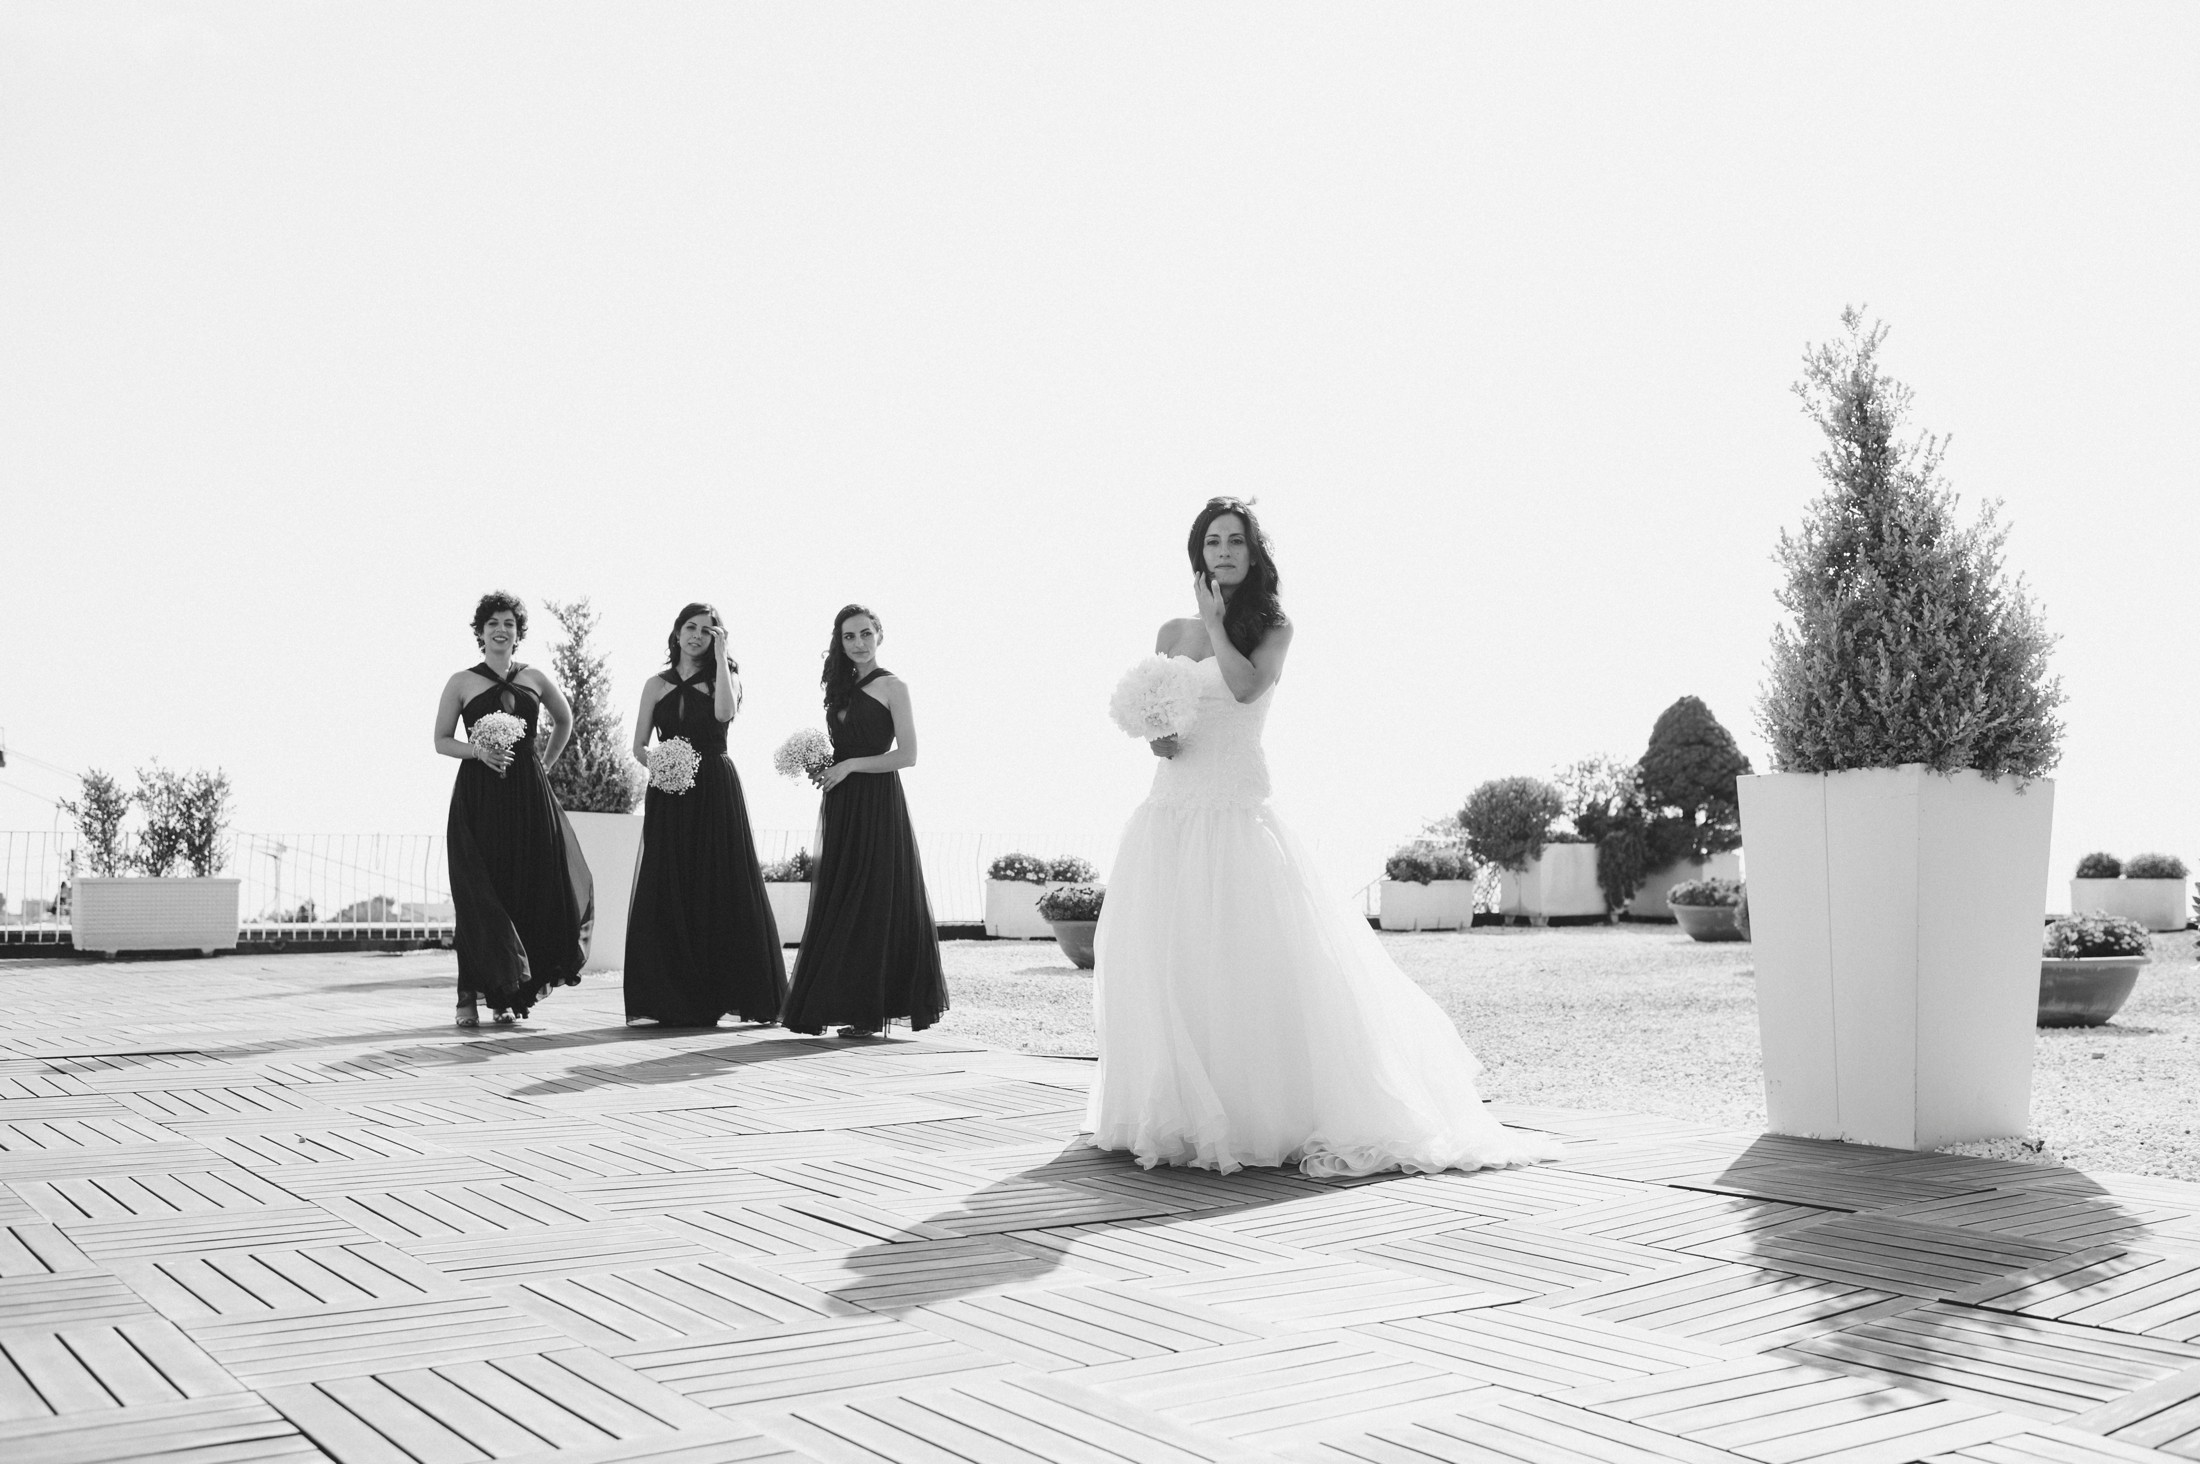 the bride with her bridesmaids in black and white